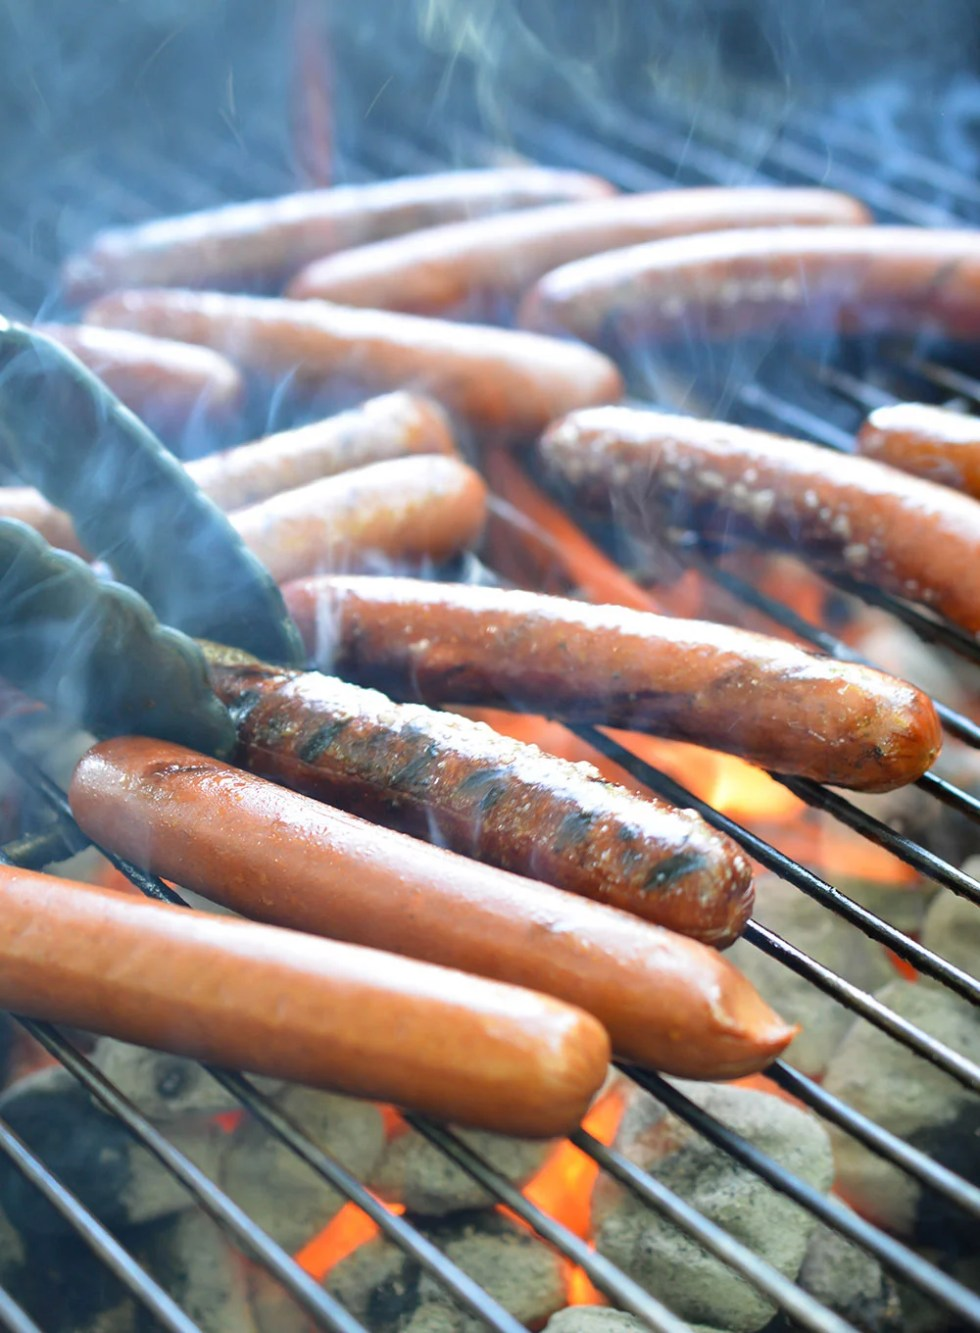 Hot Dog Bbq - Perfect for a summertime party!